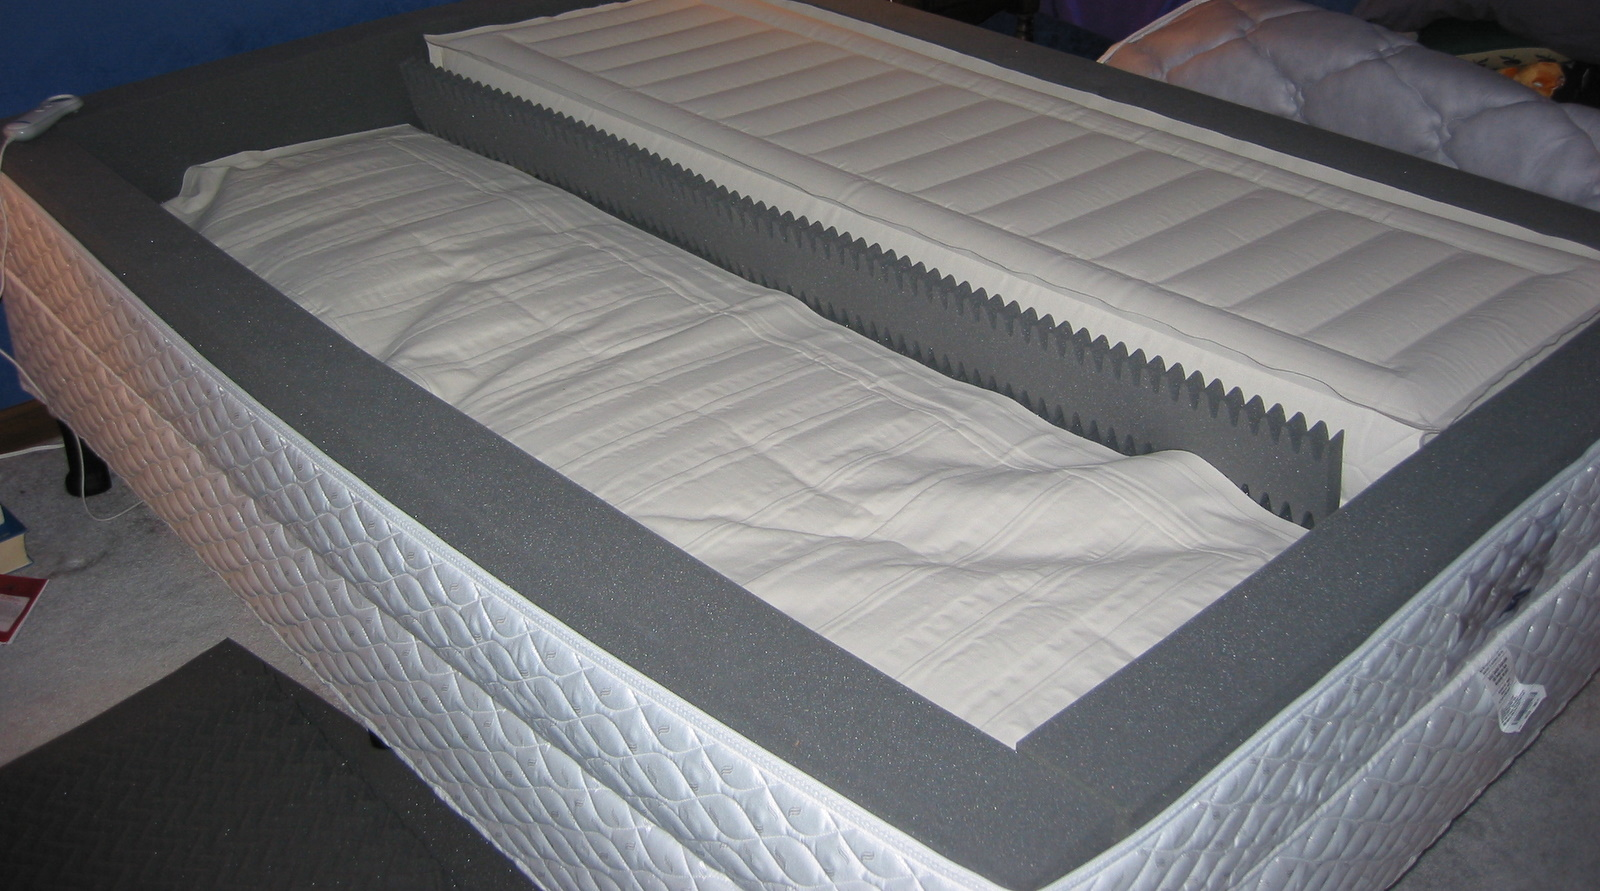 the reverie is performance luxury parts number system review sleep mattress bed